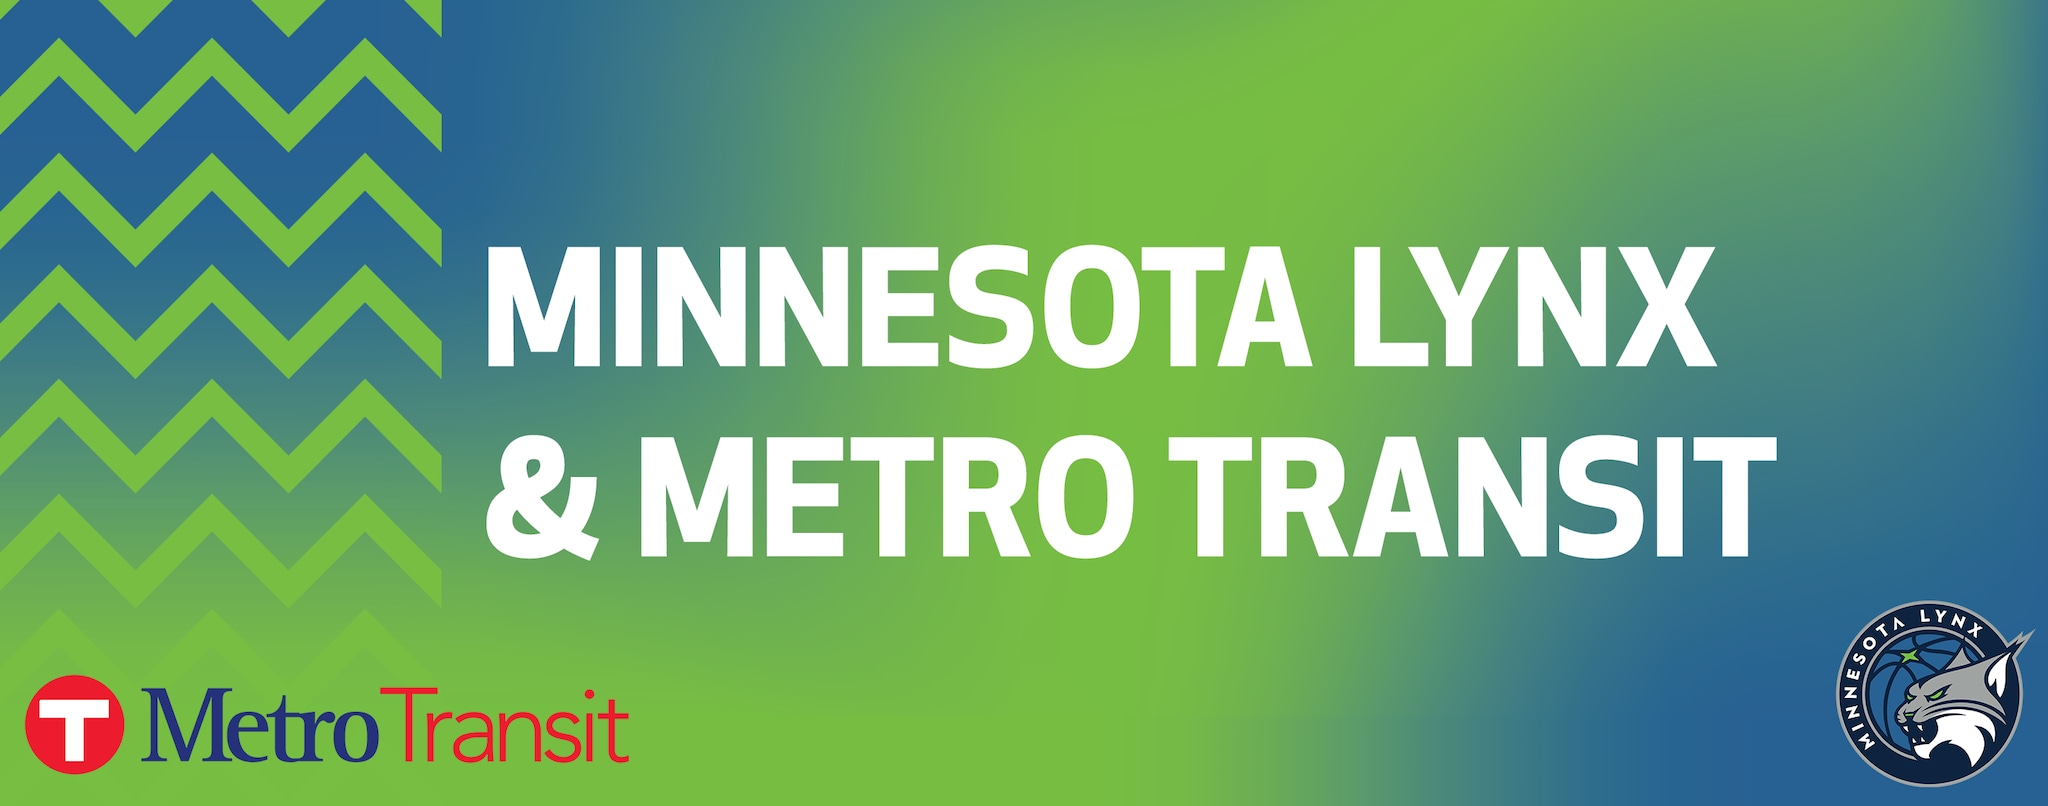 Minnesota Lynx and Metro Transit